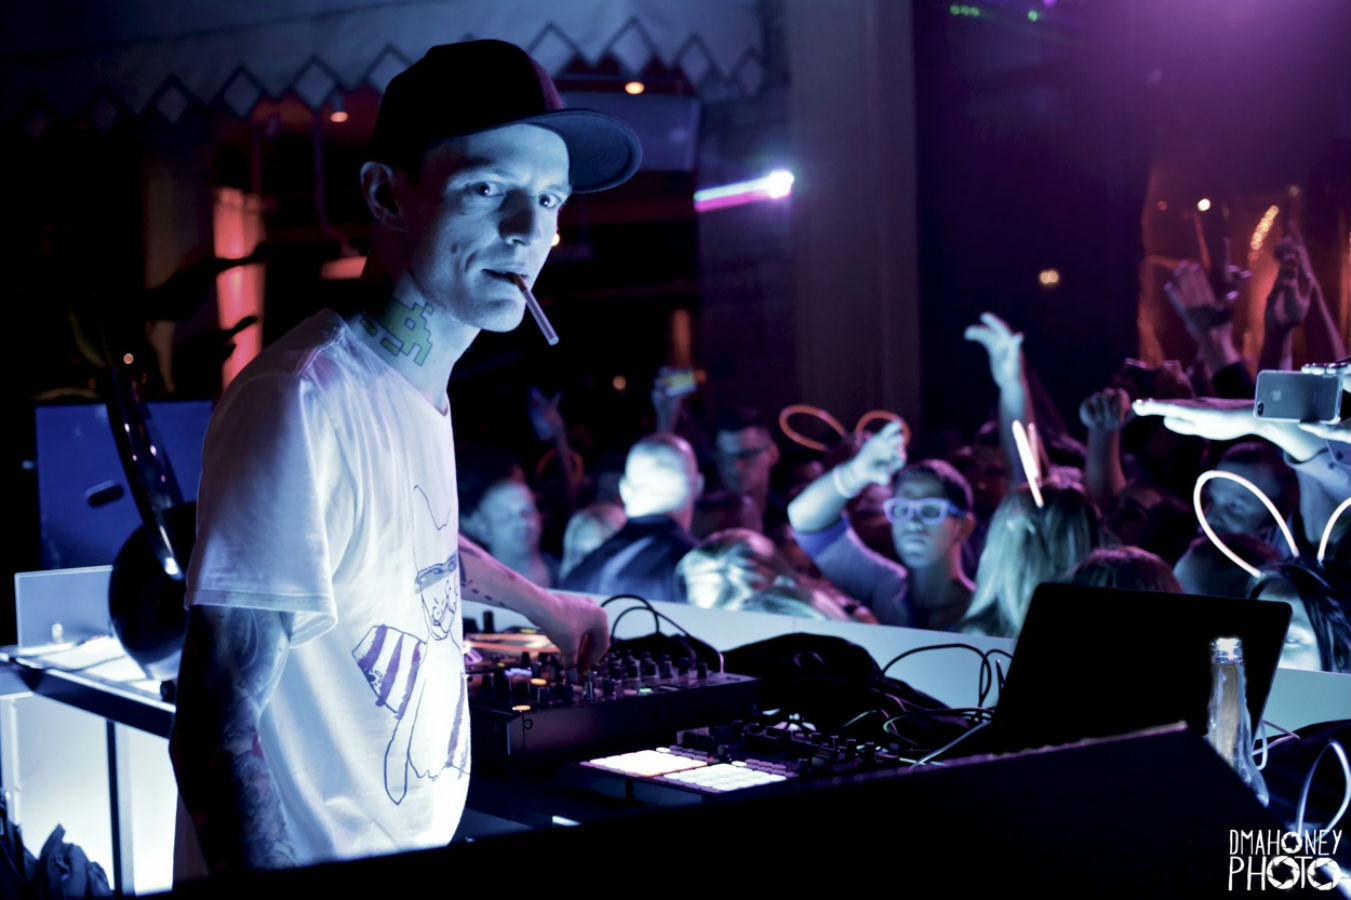 Deadmau5 Concludes NY Testpilot Set with Levels and Beer Chugging